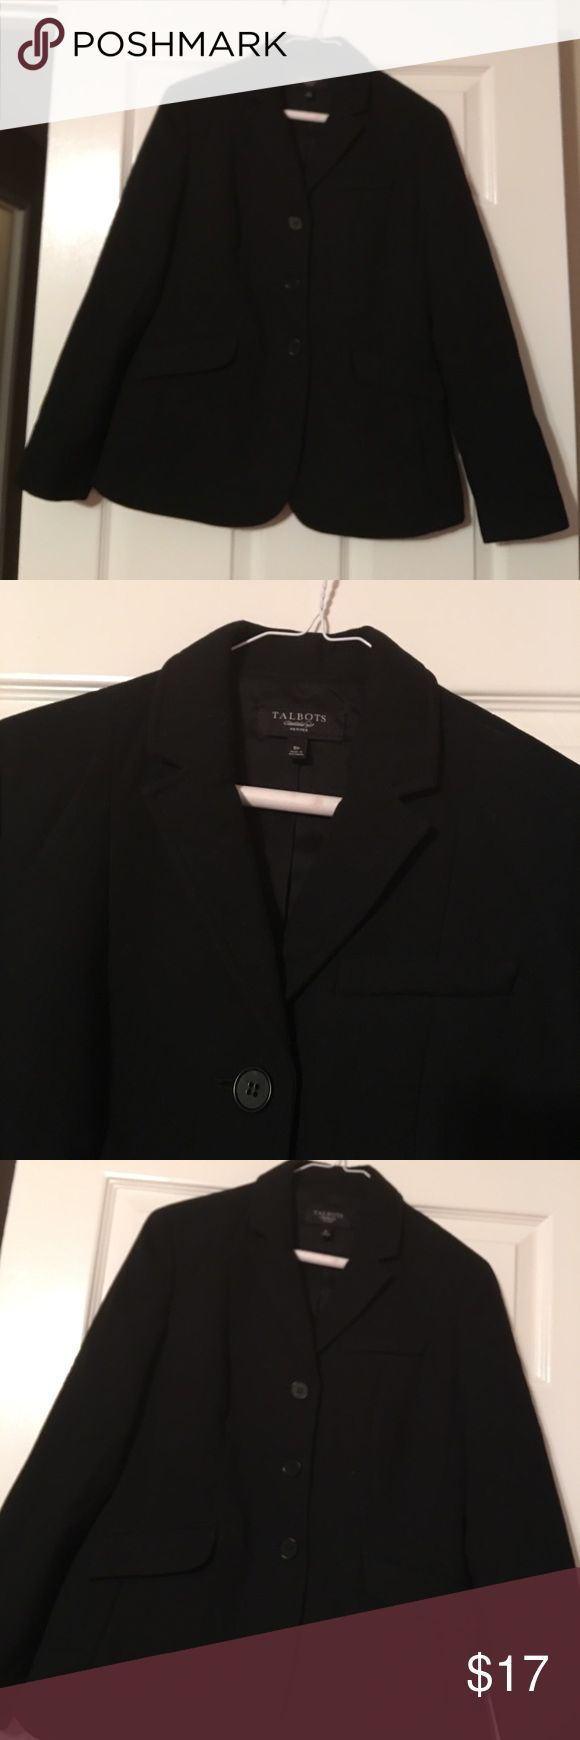 TALLBOTS sexy black blazer sale Beautiful must have for the fashionable career lady. Barely worn and great fit Talbots Jackets & Coats Blazers